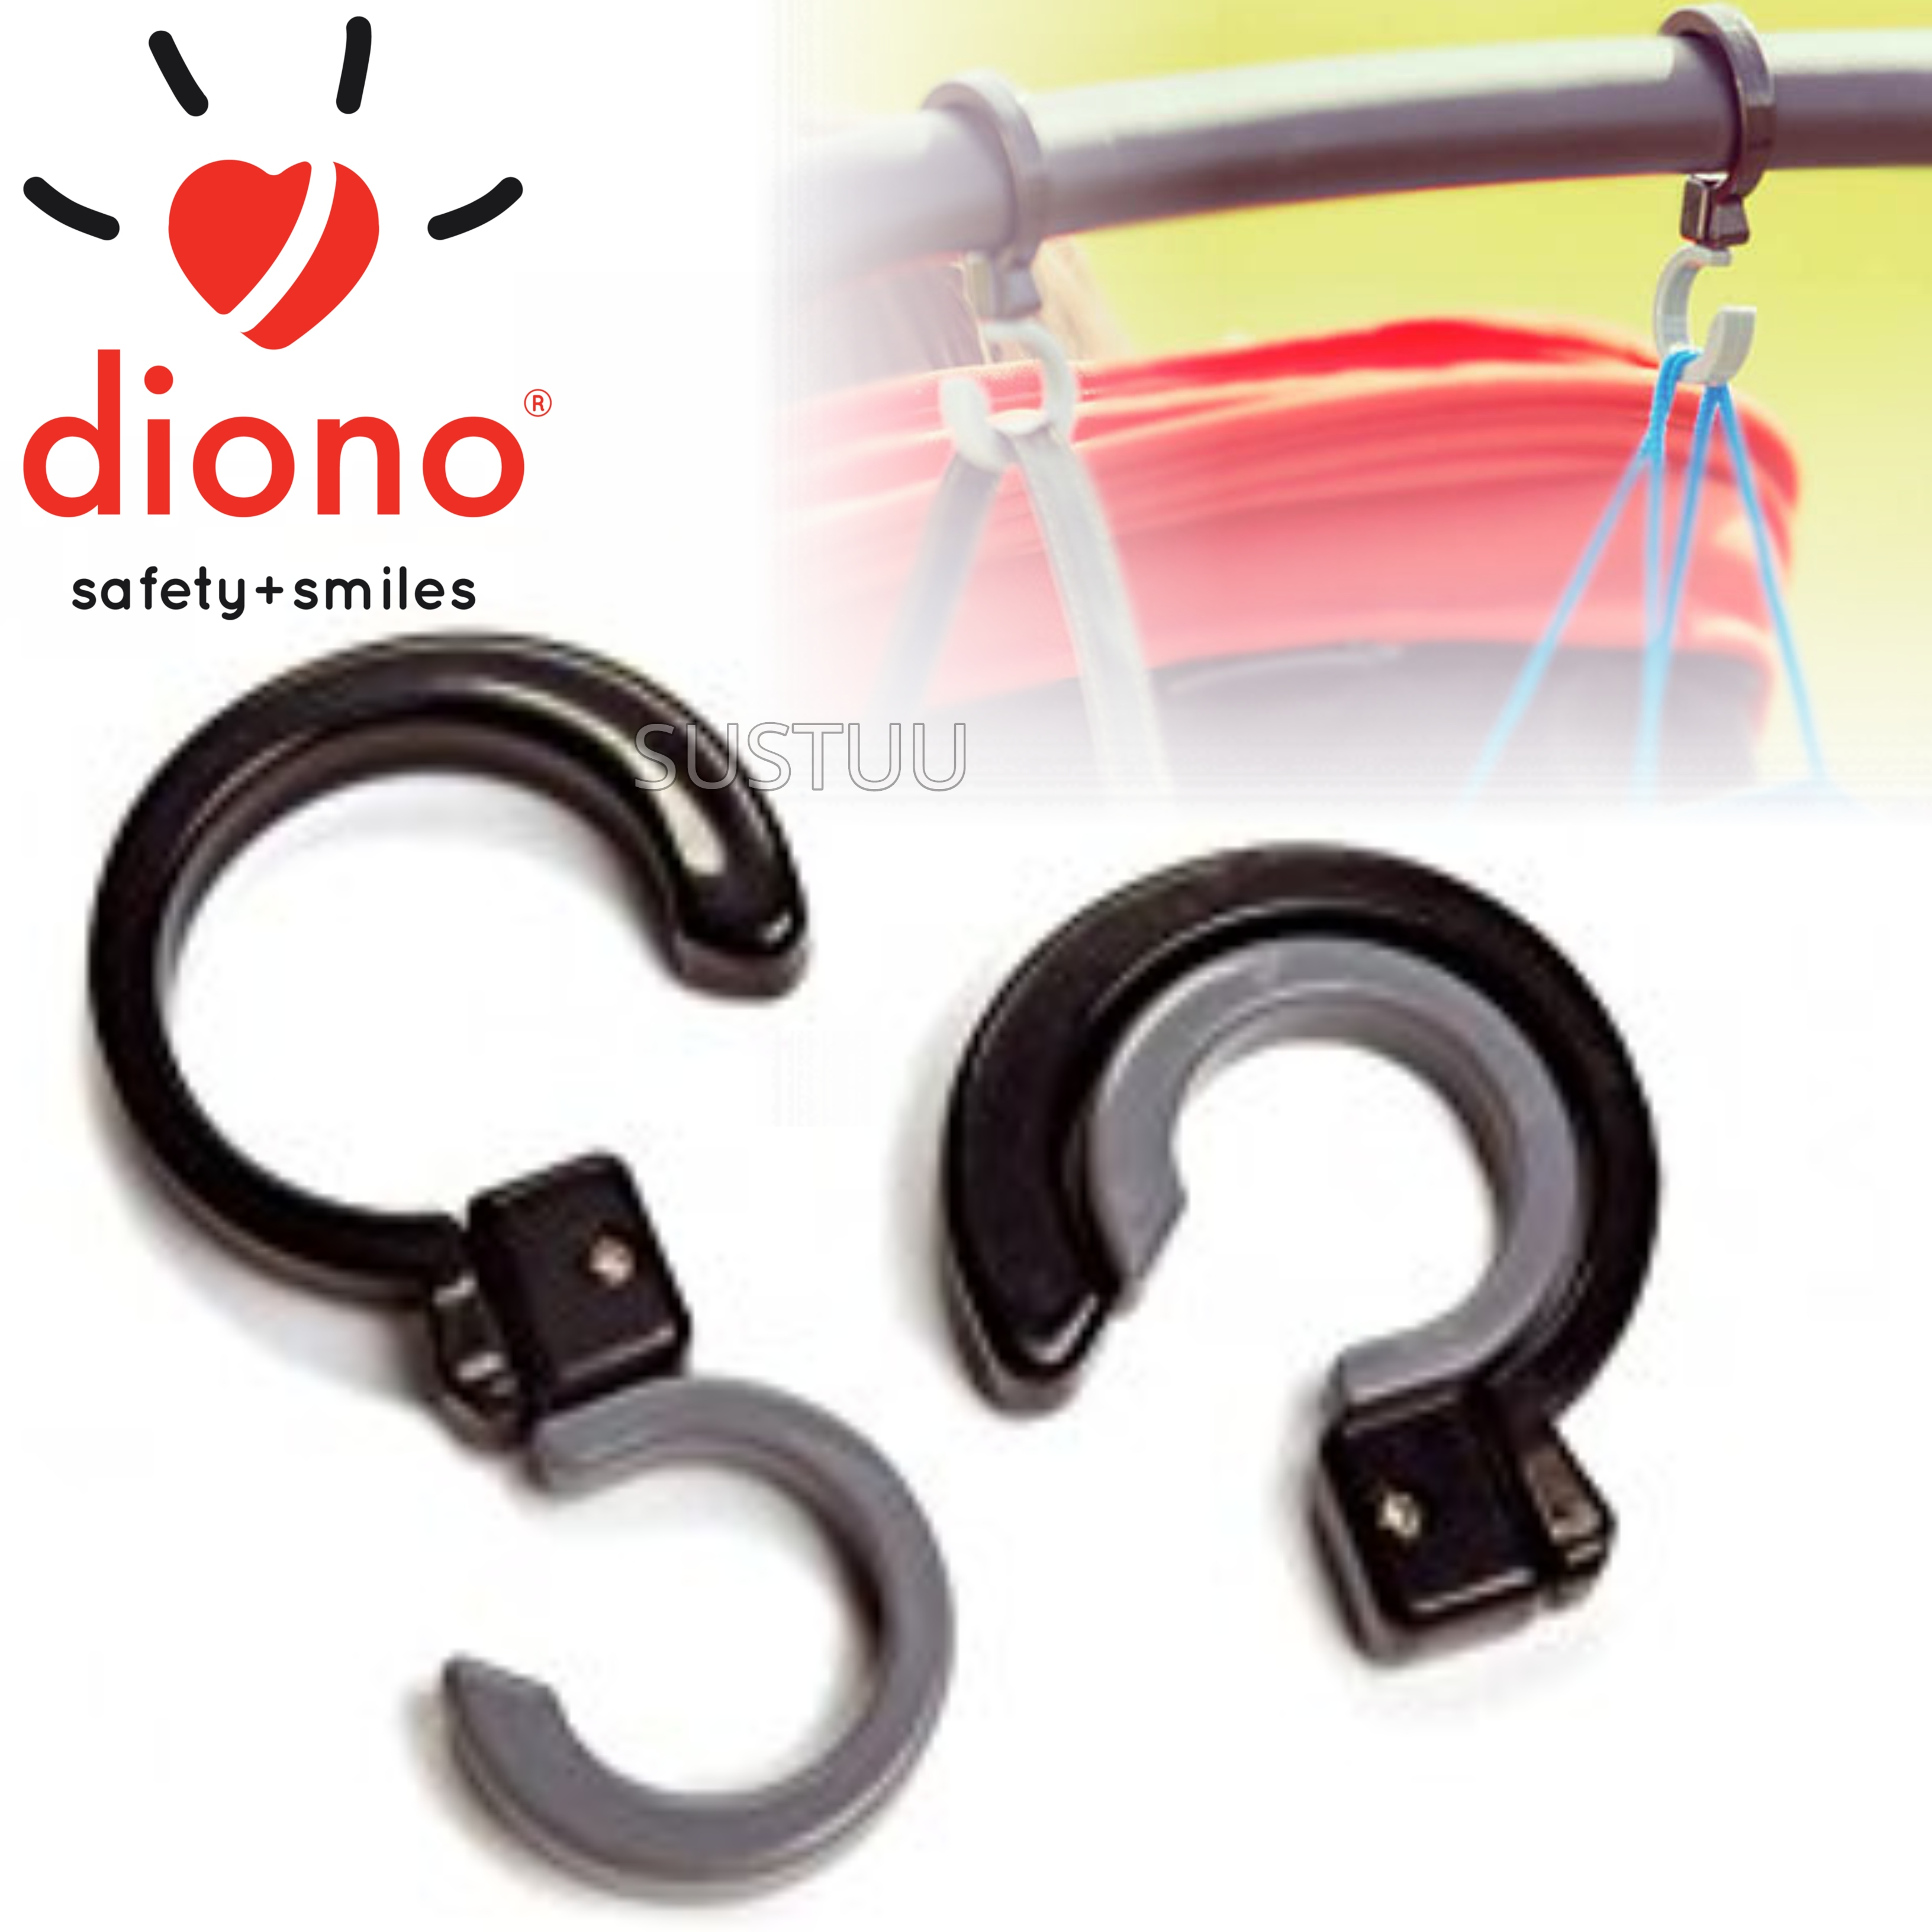 Diono Buggy Universal Hook Set of 2 | Weight-7 lbs Per Hook | Rotate 360° | Grey/black